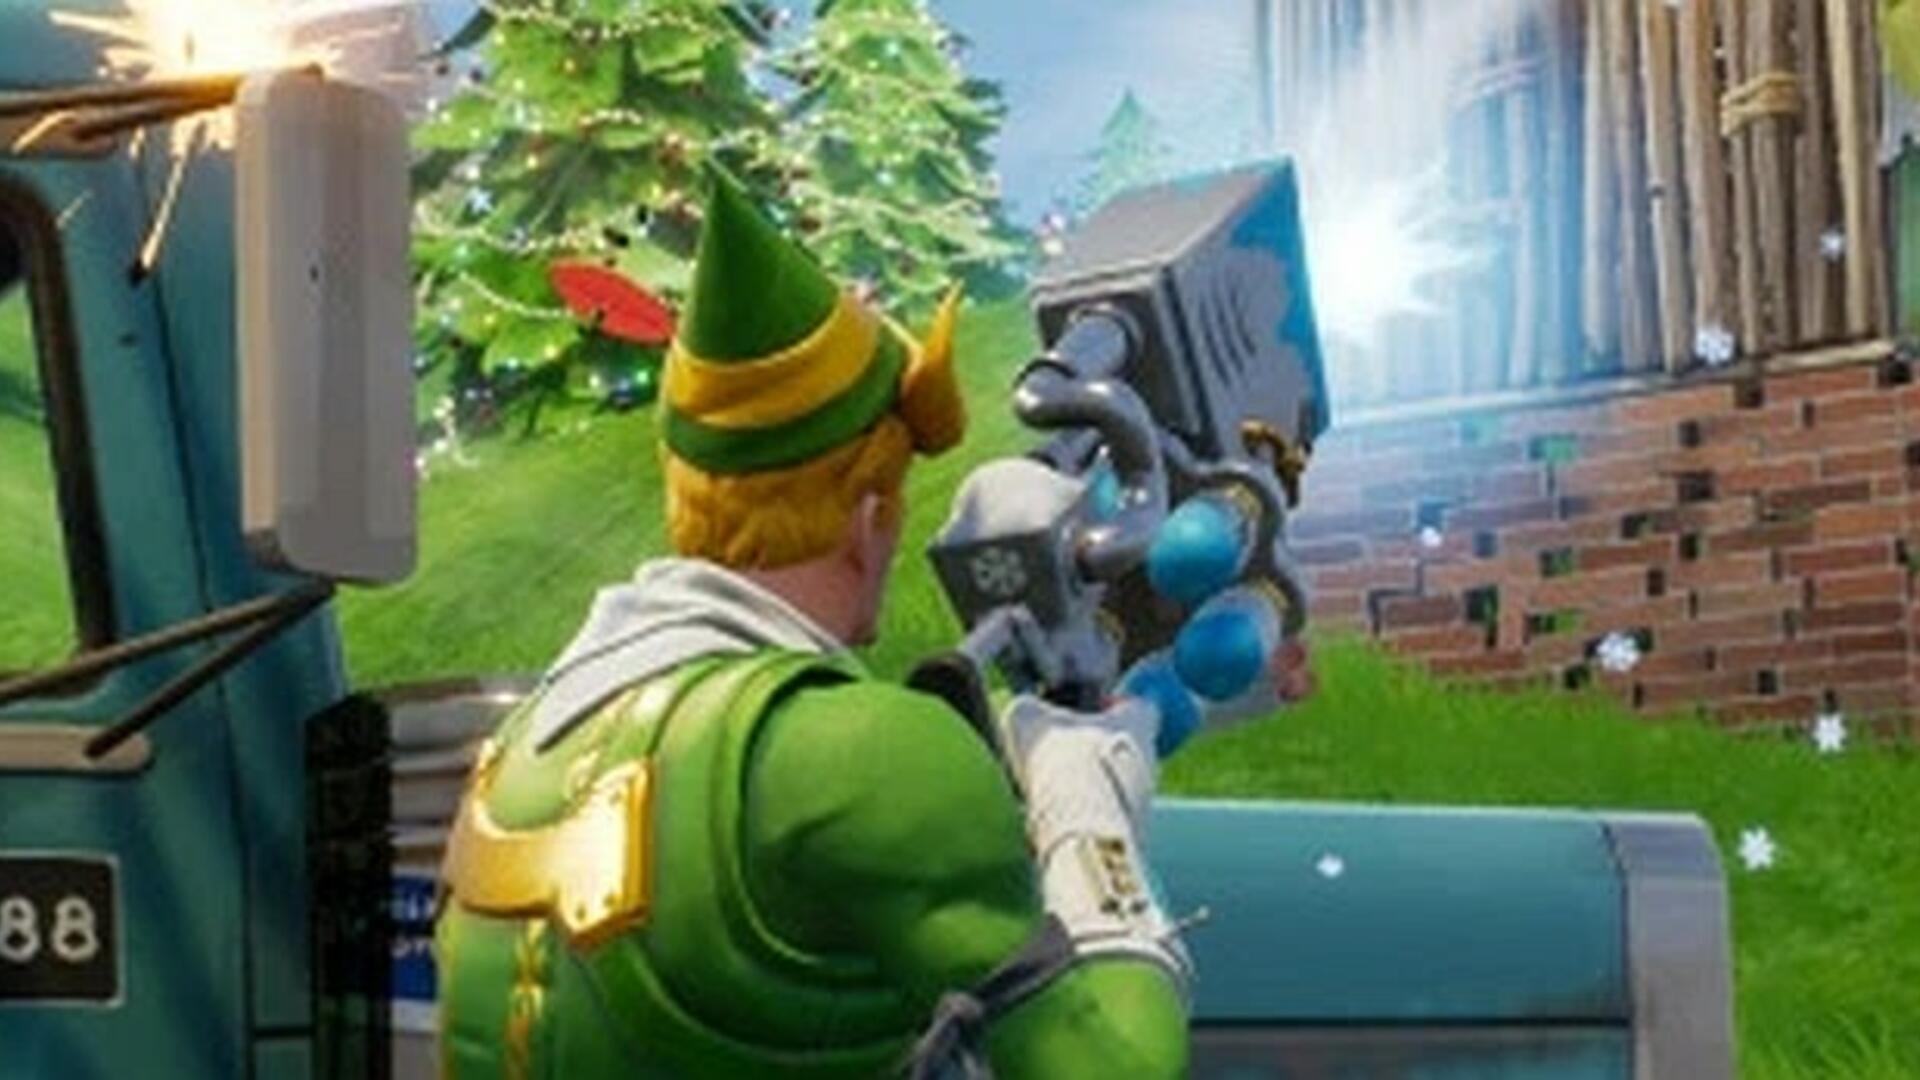 Fortnite is Dominating on the Switch Based on New Nintendo Financial Report